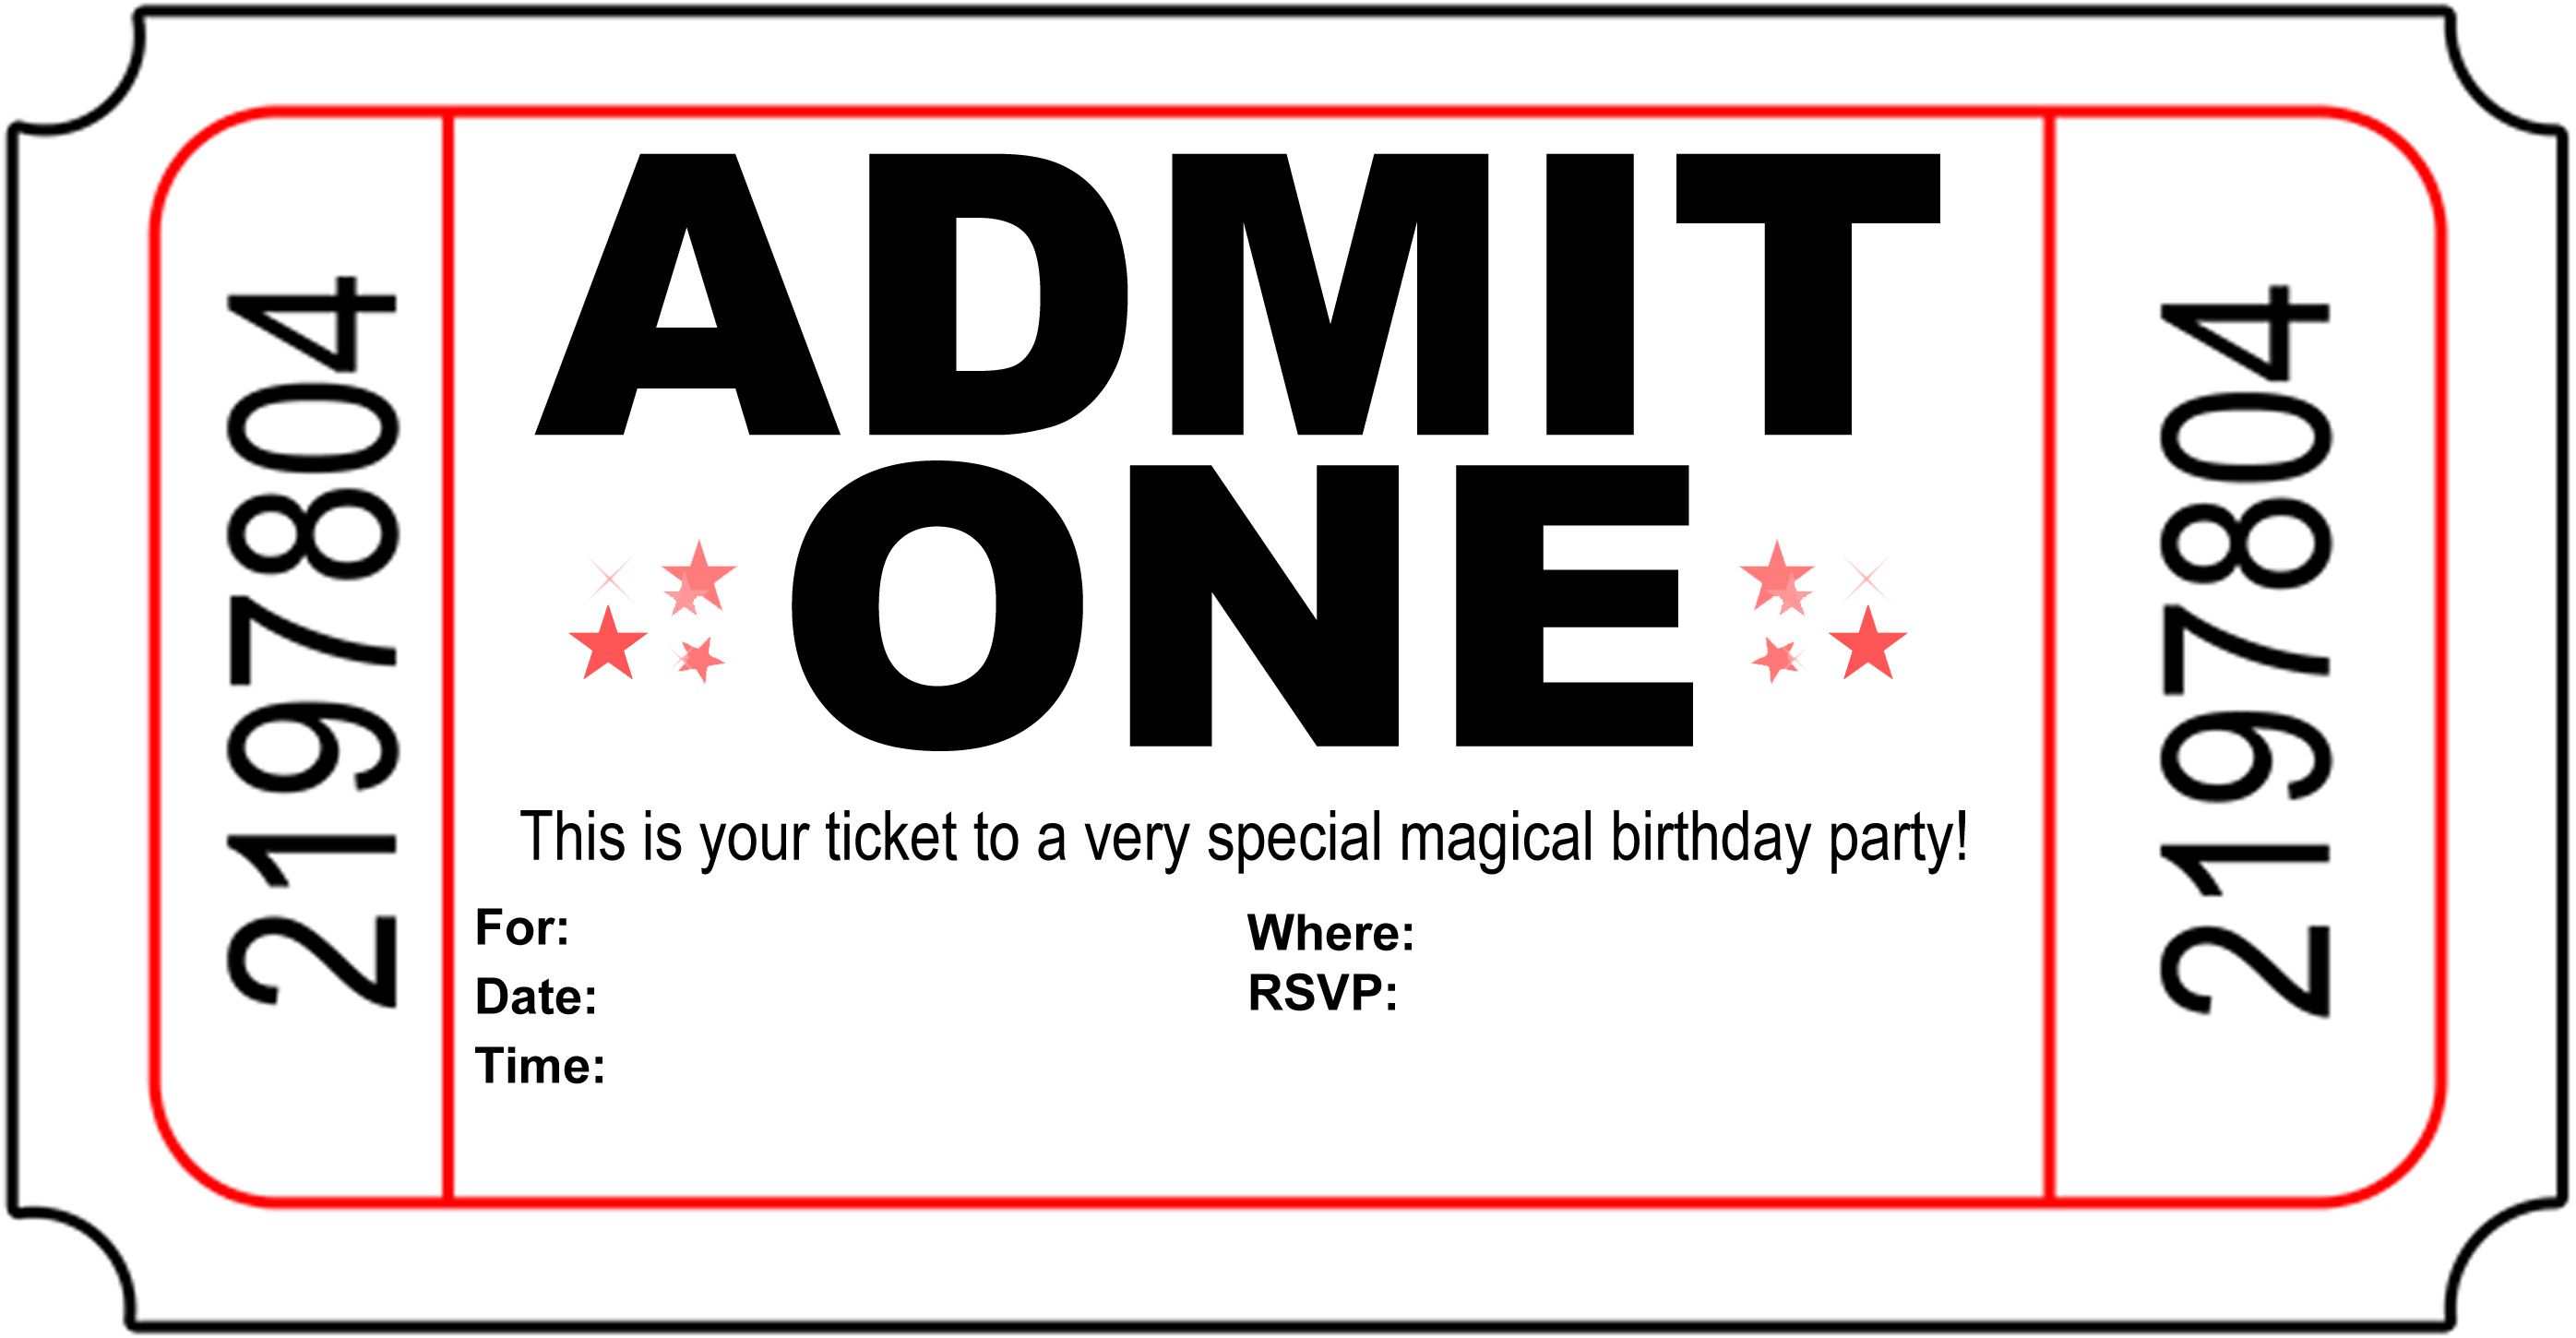 free printable 13th birthday party invitations ; 13Th-Birthday-Invitations-Printable-for-a-prepossessing-birthday-Invitation-design-with-prepossessing-layout-8